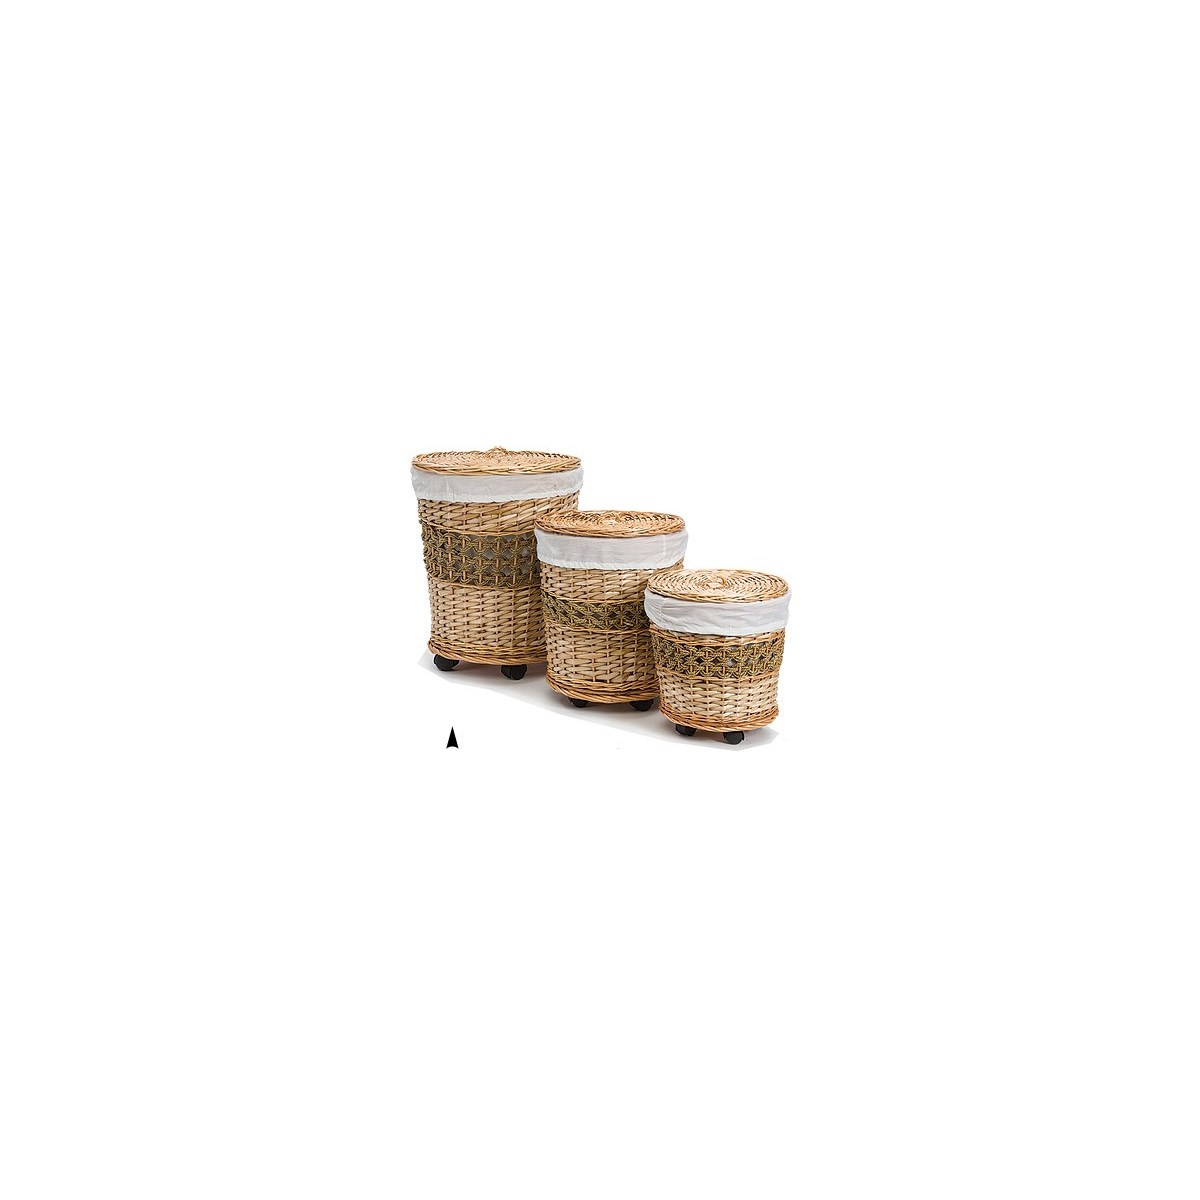 5/11-31 S/3 ROUND WILLOW HAMPERS ON CASTERS CS. PK.: 1